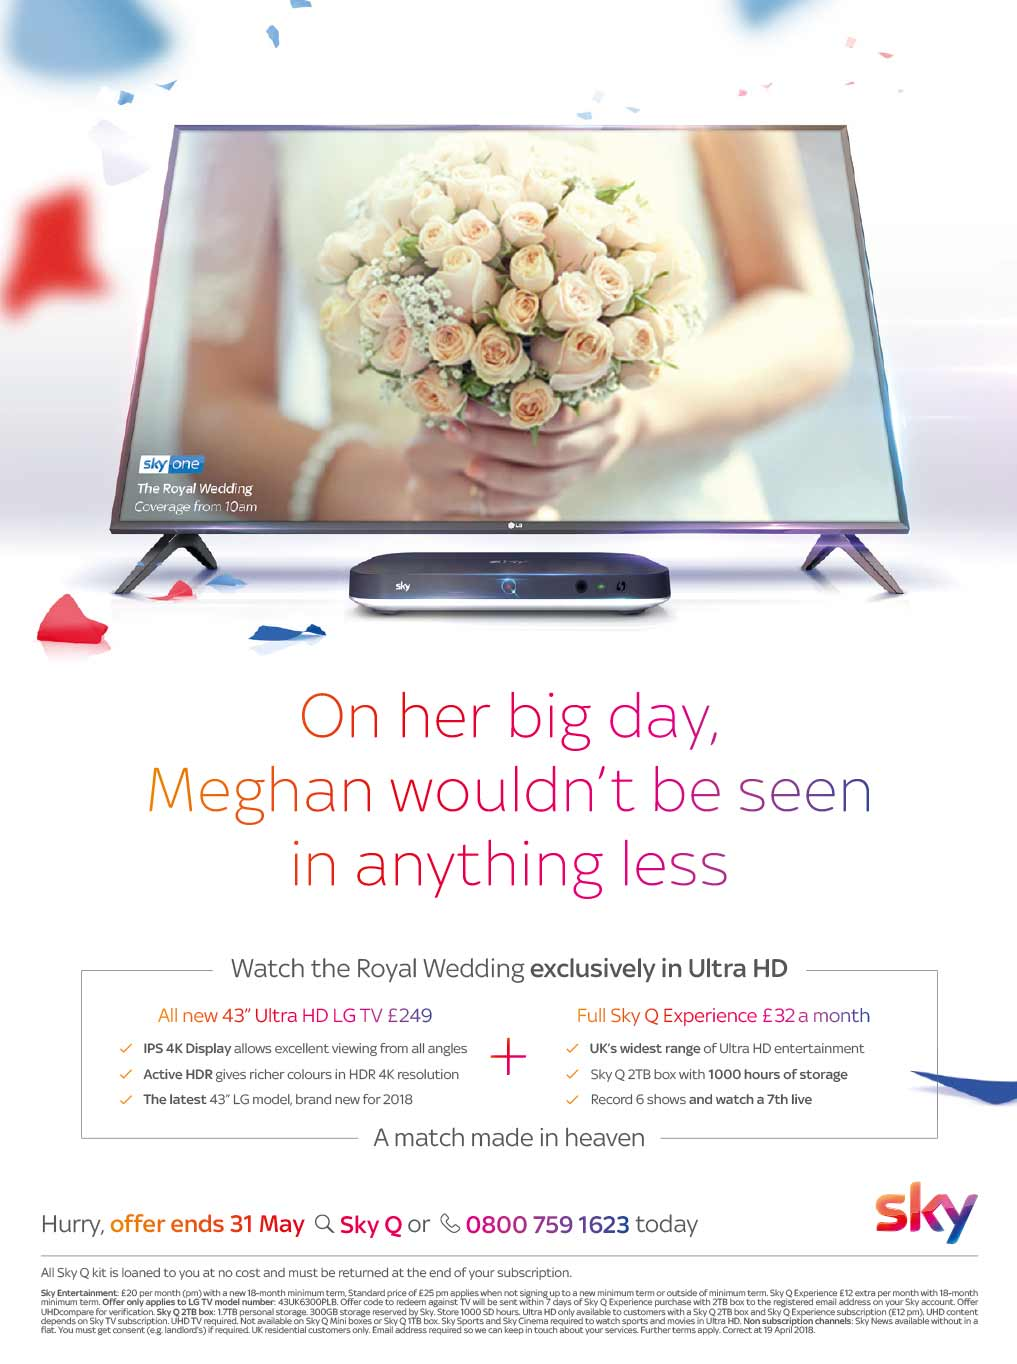 The Royal Wedding on Sky TV - Copywriting for Press Ad